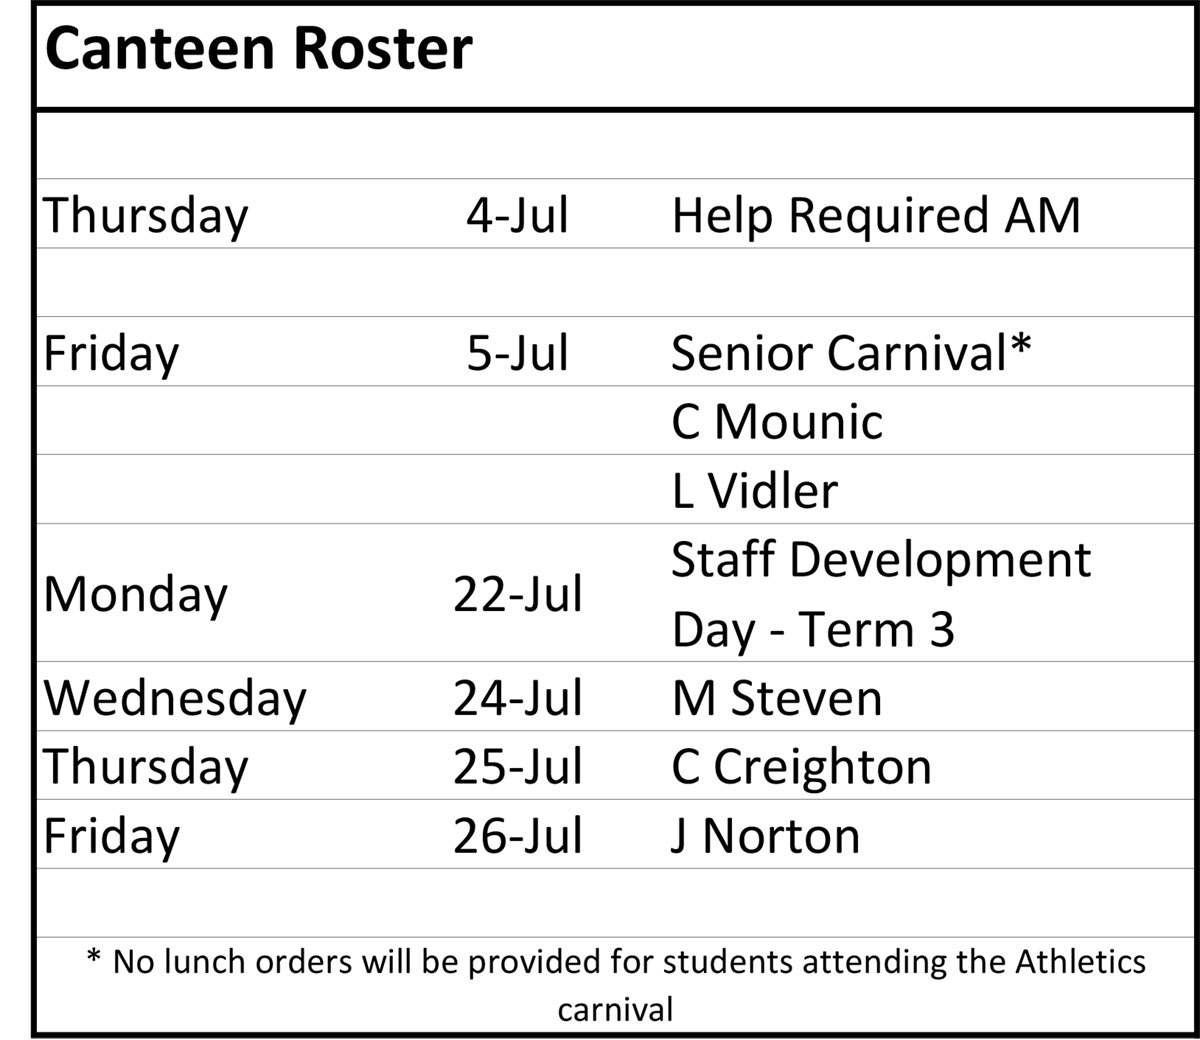 canteen-roster